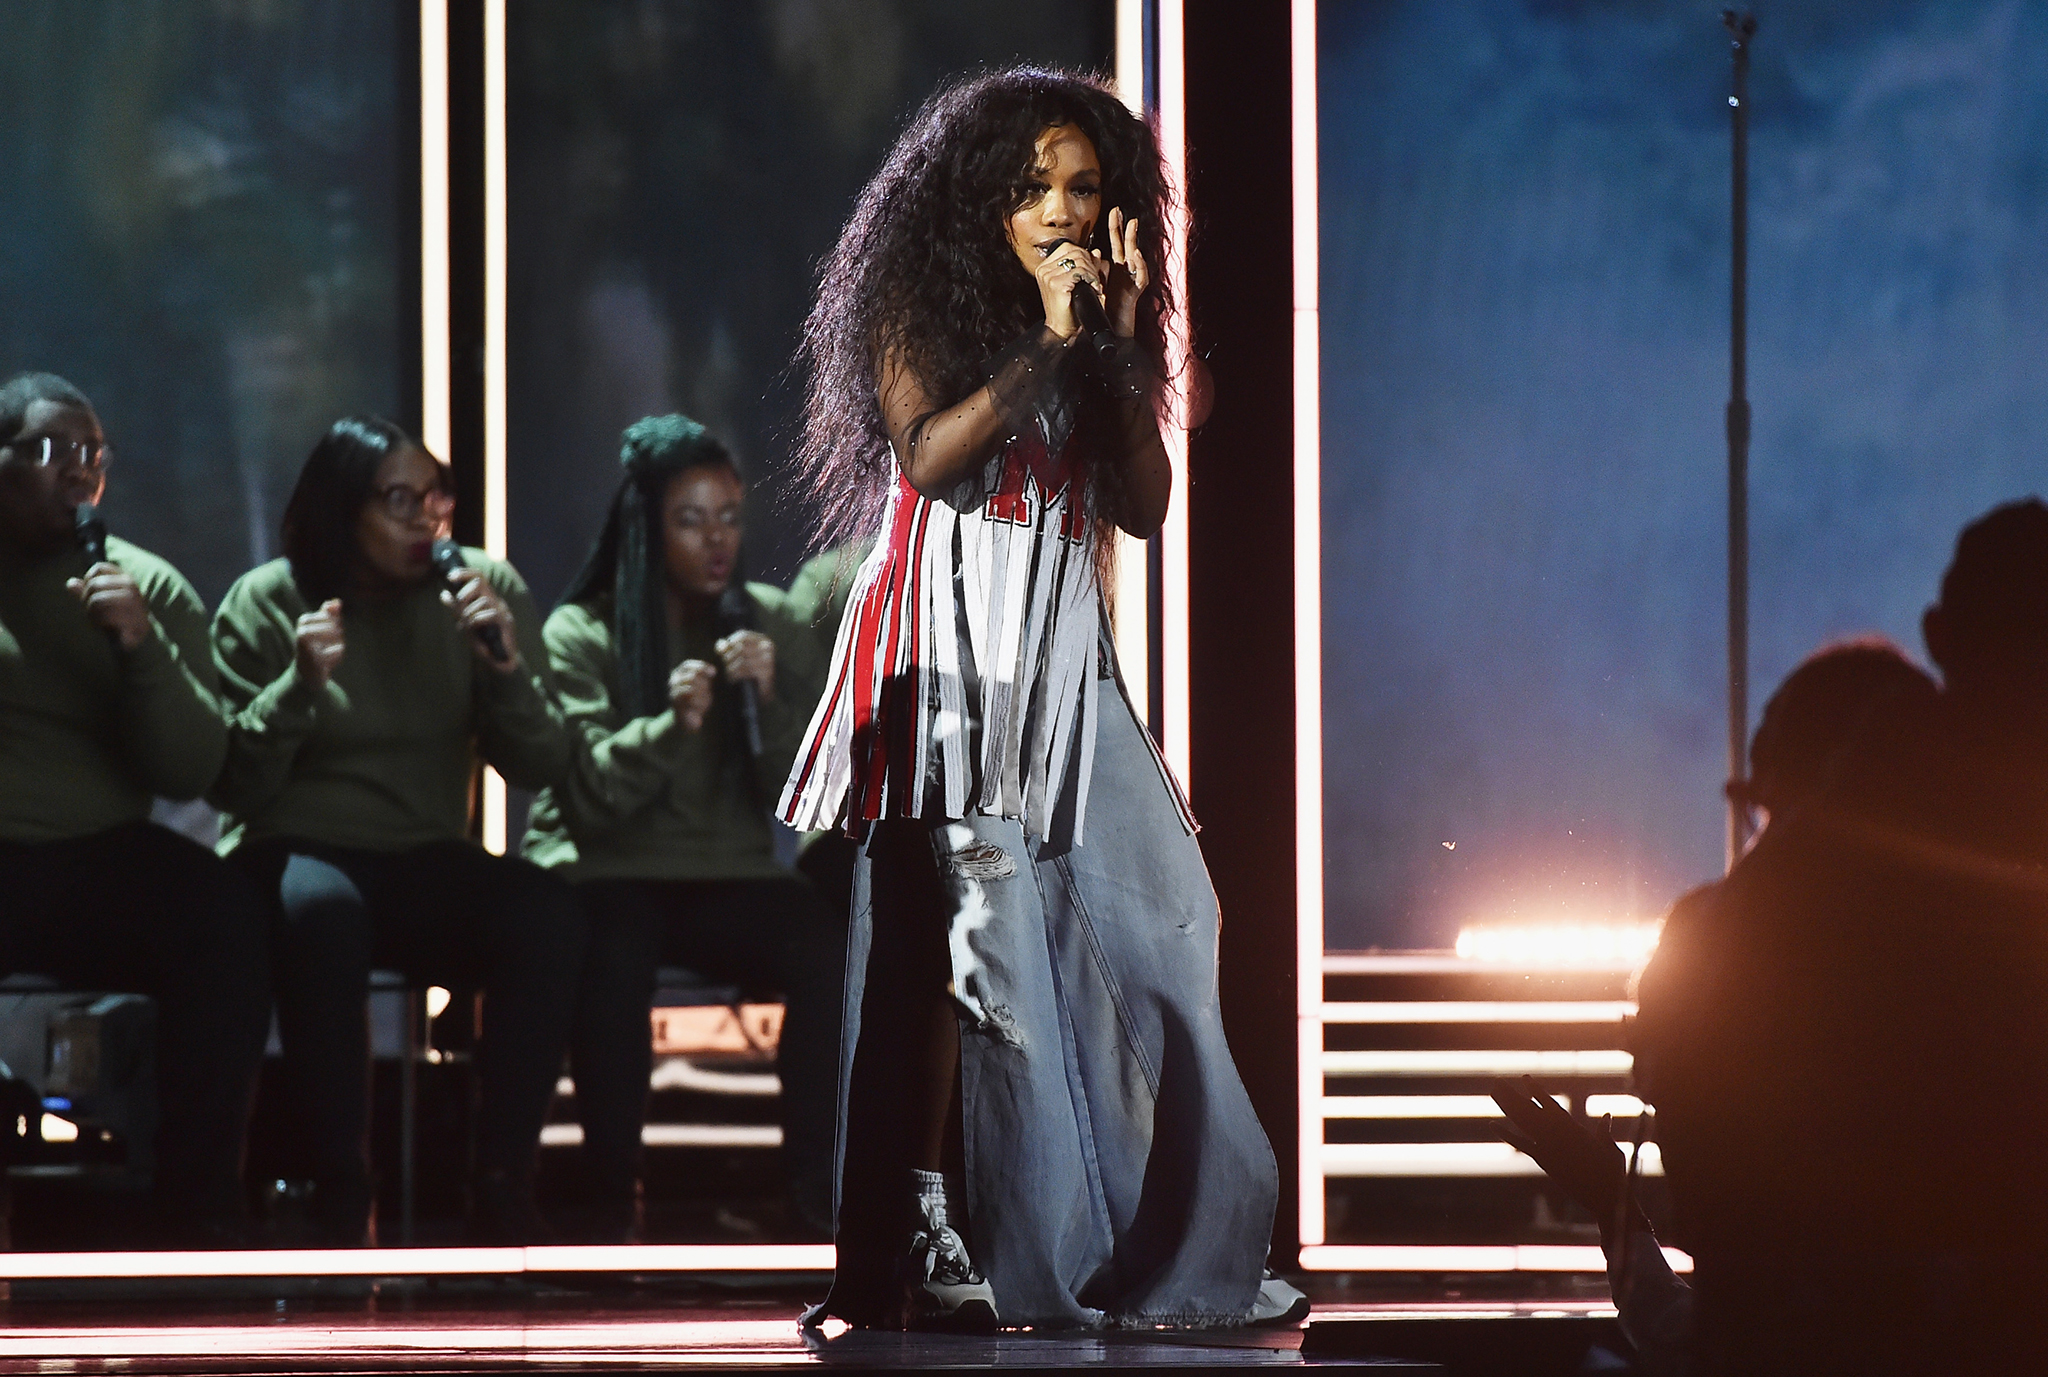 Recording artist SZA performs onstage during the 60th Annual Grammy Awards at Madison Square Garden on Jan. 28, 2018 in New York City. Theo Wargo—WireImage/Getty Images